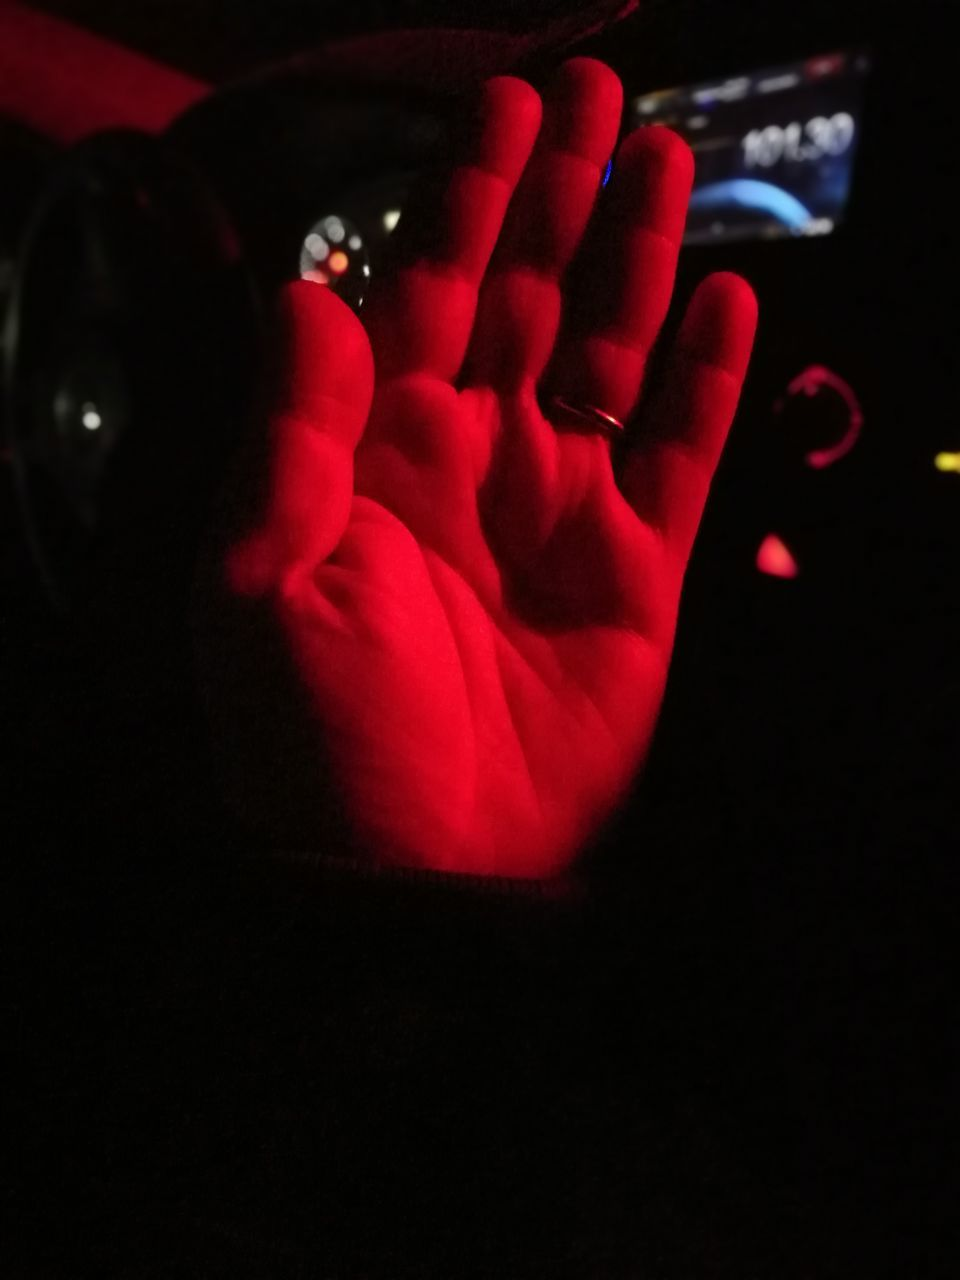 human hand, human body part, hand, real people, one person, body part, red, indoors, dark, human finger, finger, unrecognizable person, close-up, leisure activity, lifestyles, communication, copy space, domestic room, mystery, black background, human limb